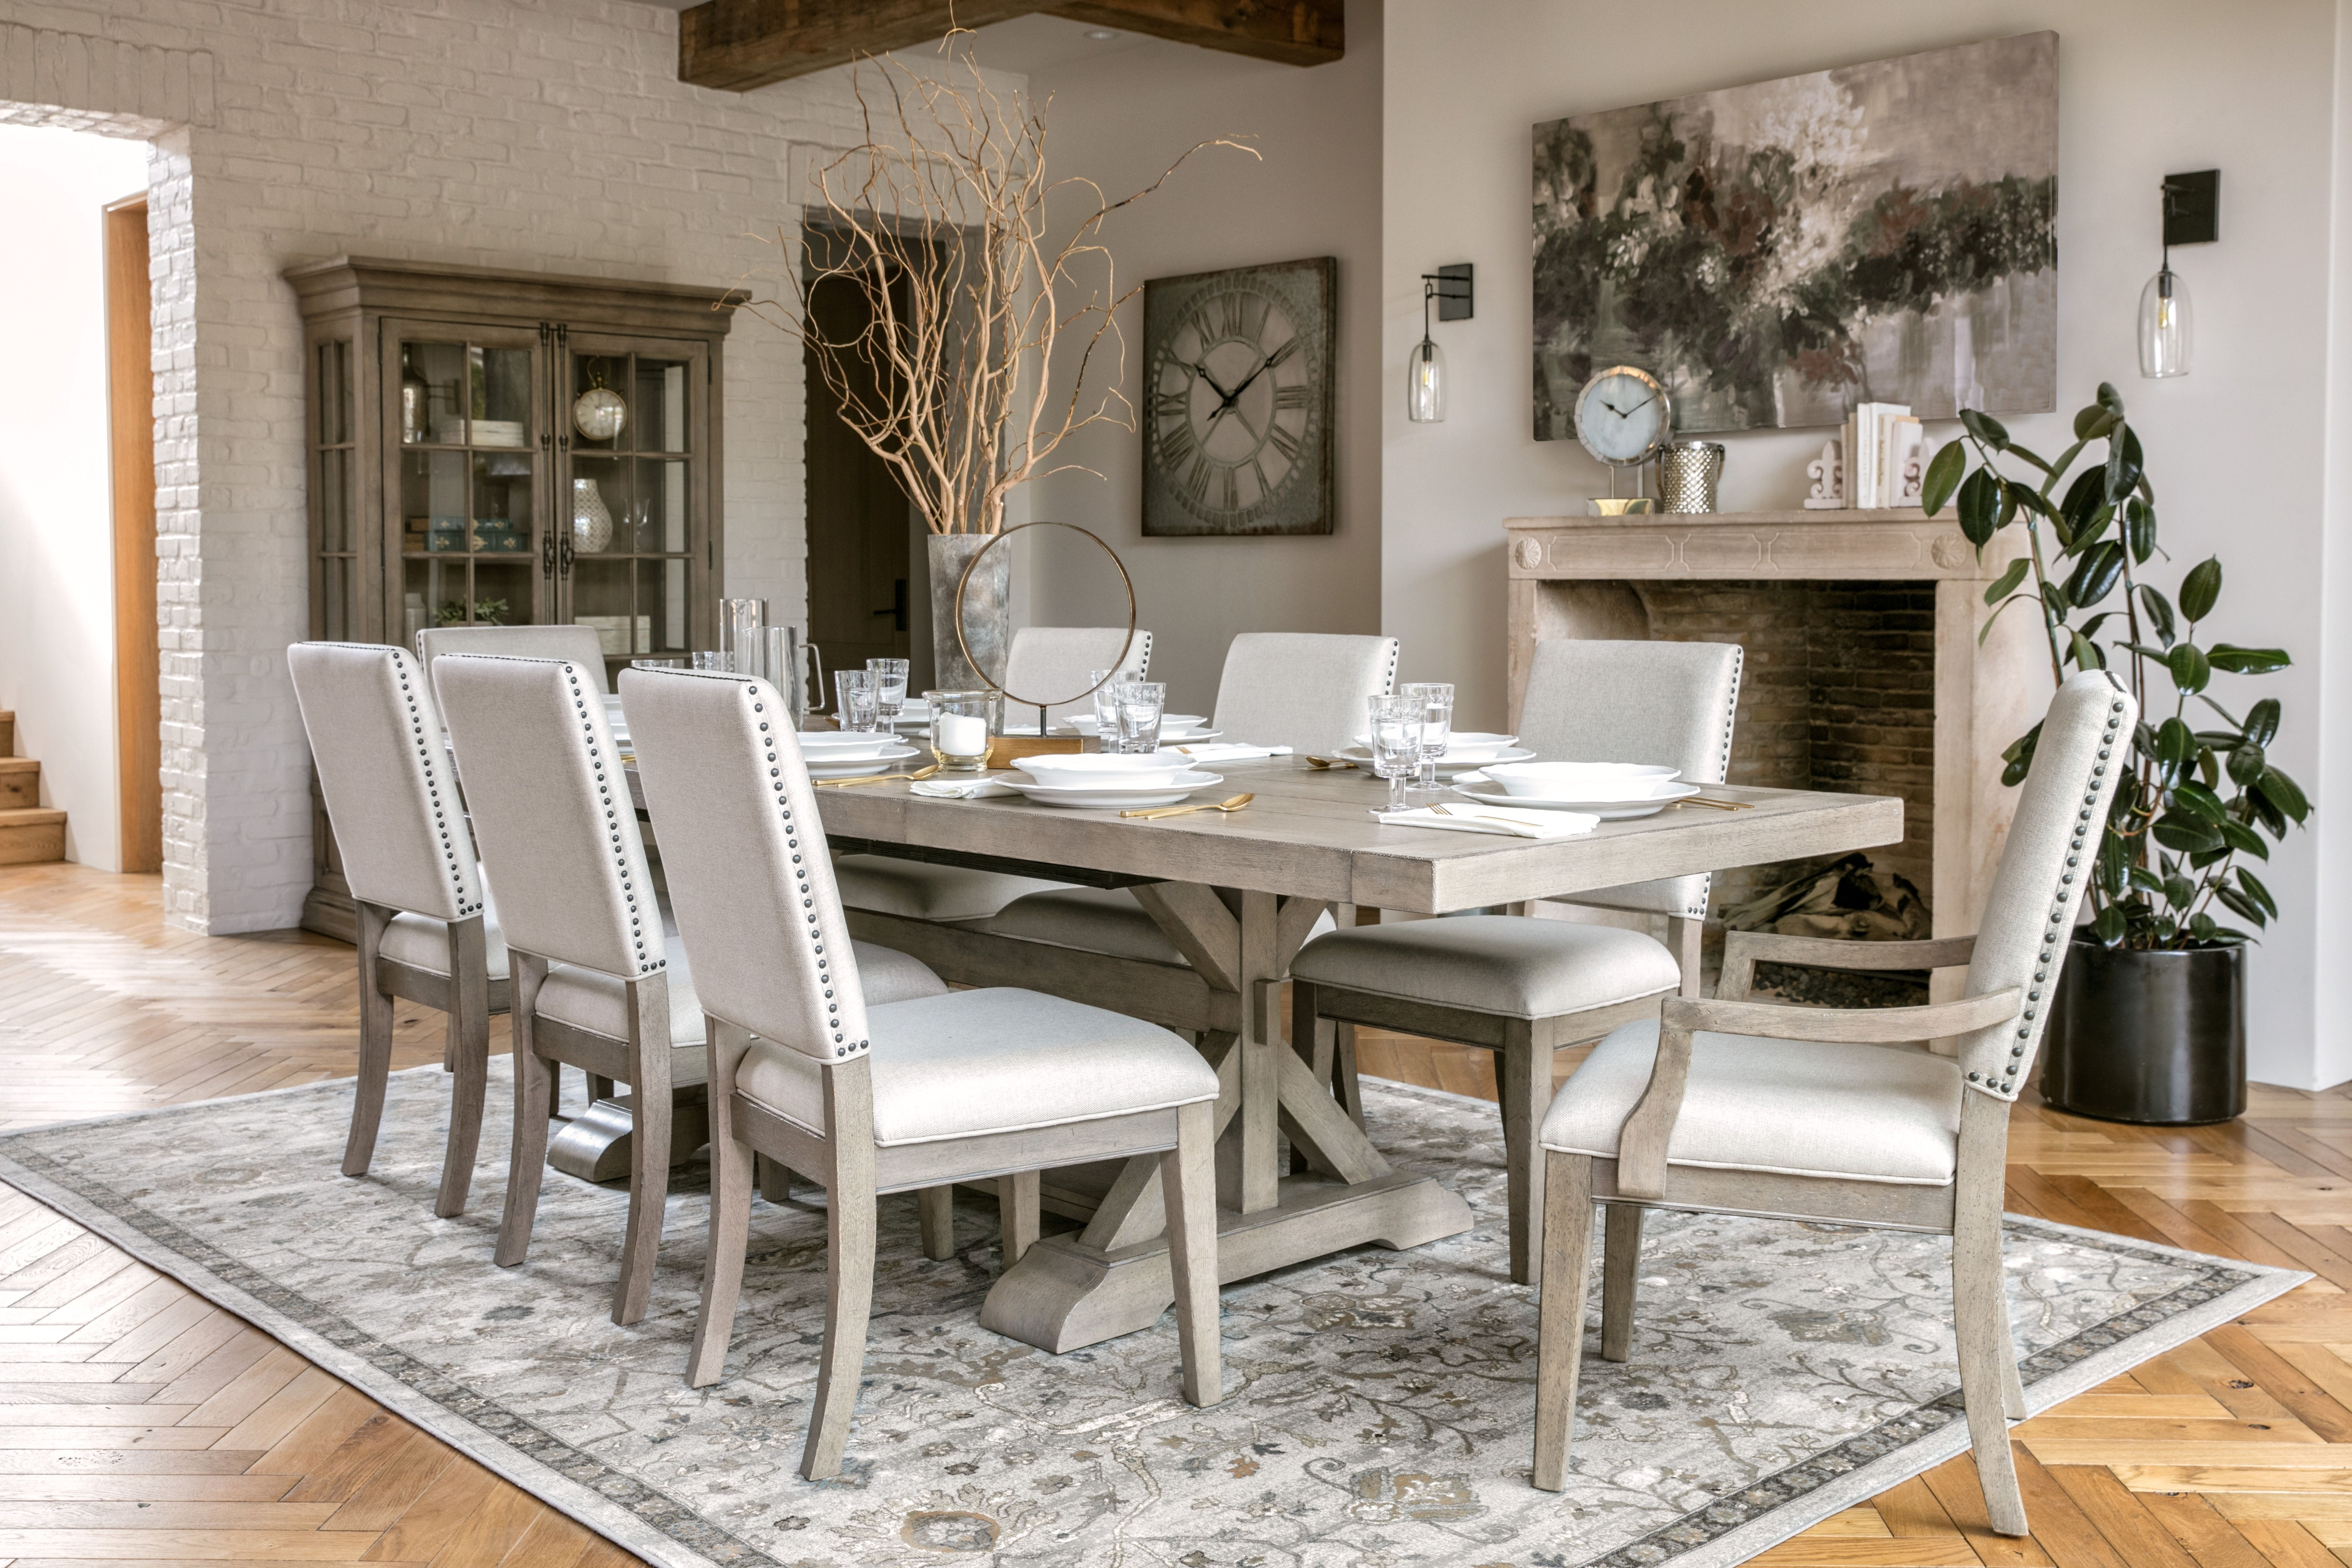 Walden 9 Piece Extension Dining Set | Nailhead Trim, Side Chair And For Newest Caden 5 Piece Round Dining Sets With Upholstered Side Chairs (View 14 of 20)